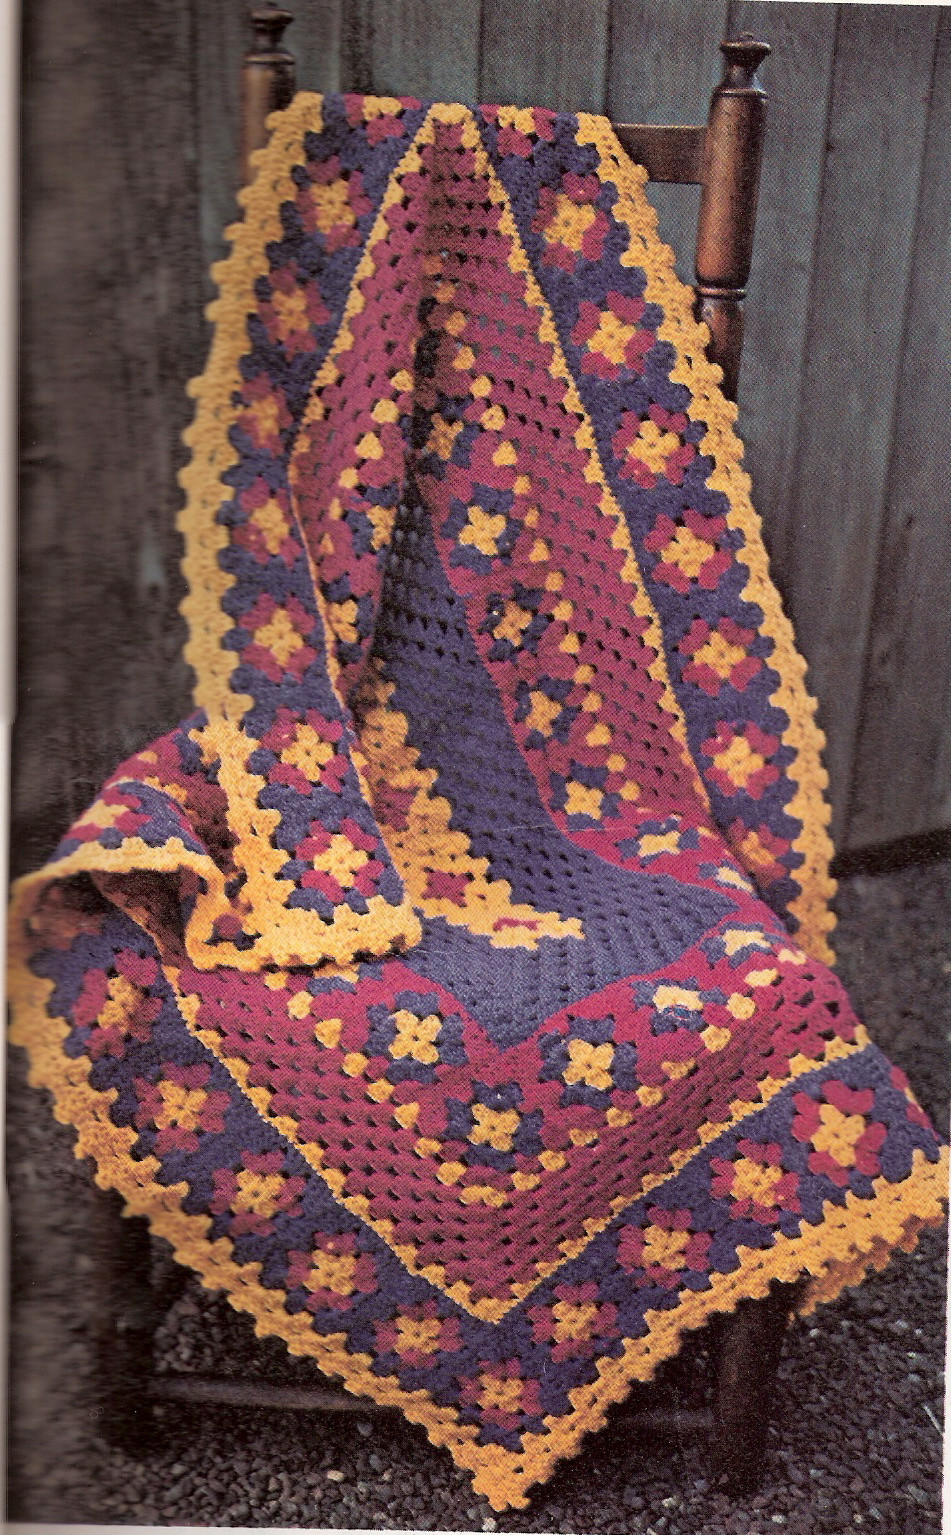 Free Afghan Patterns Luxury Crochet Diamond Square Afghan Pattern – Crochet Patterns Of Perfect 41 Ideas Free Afghan Patterns